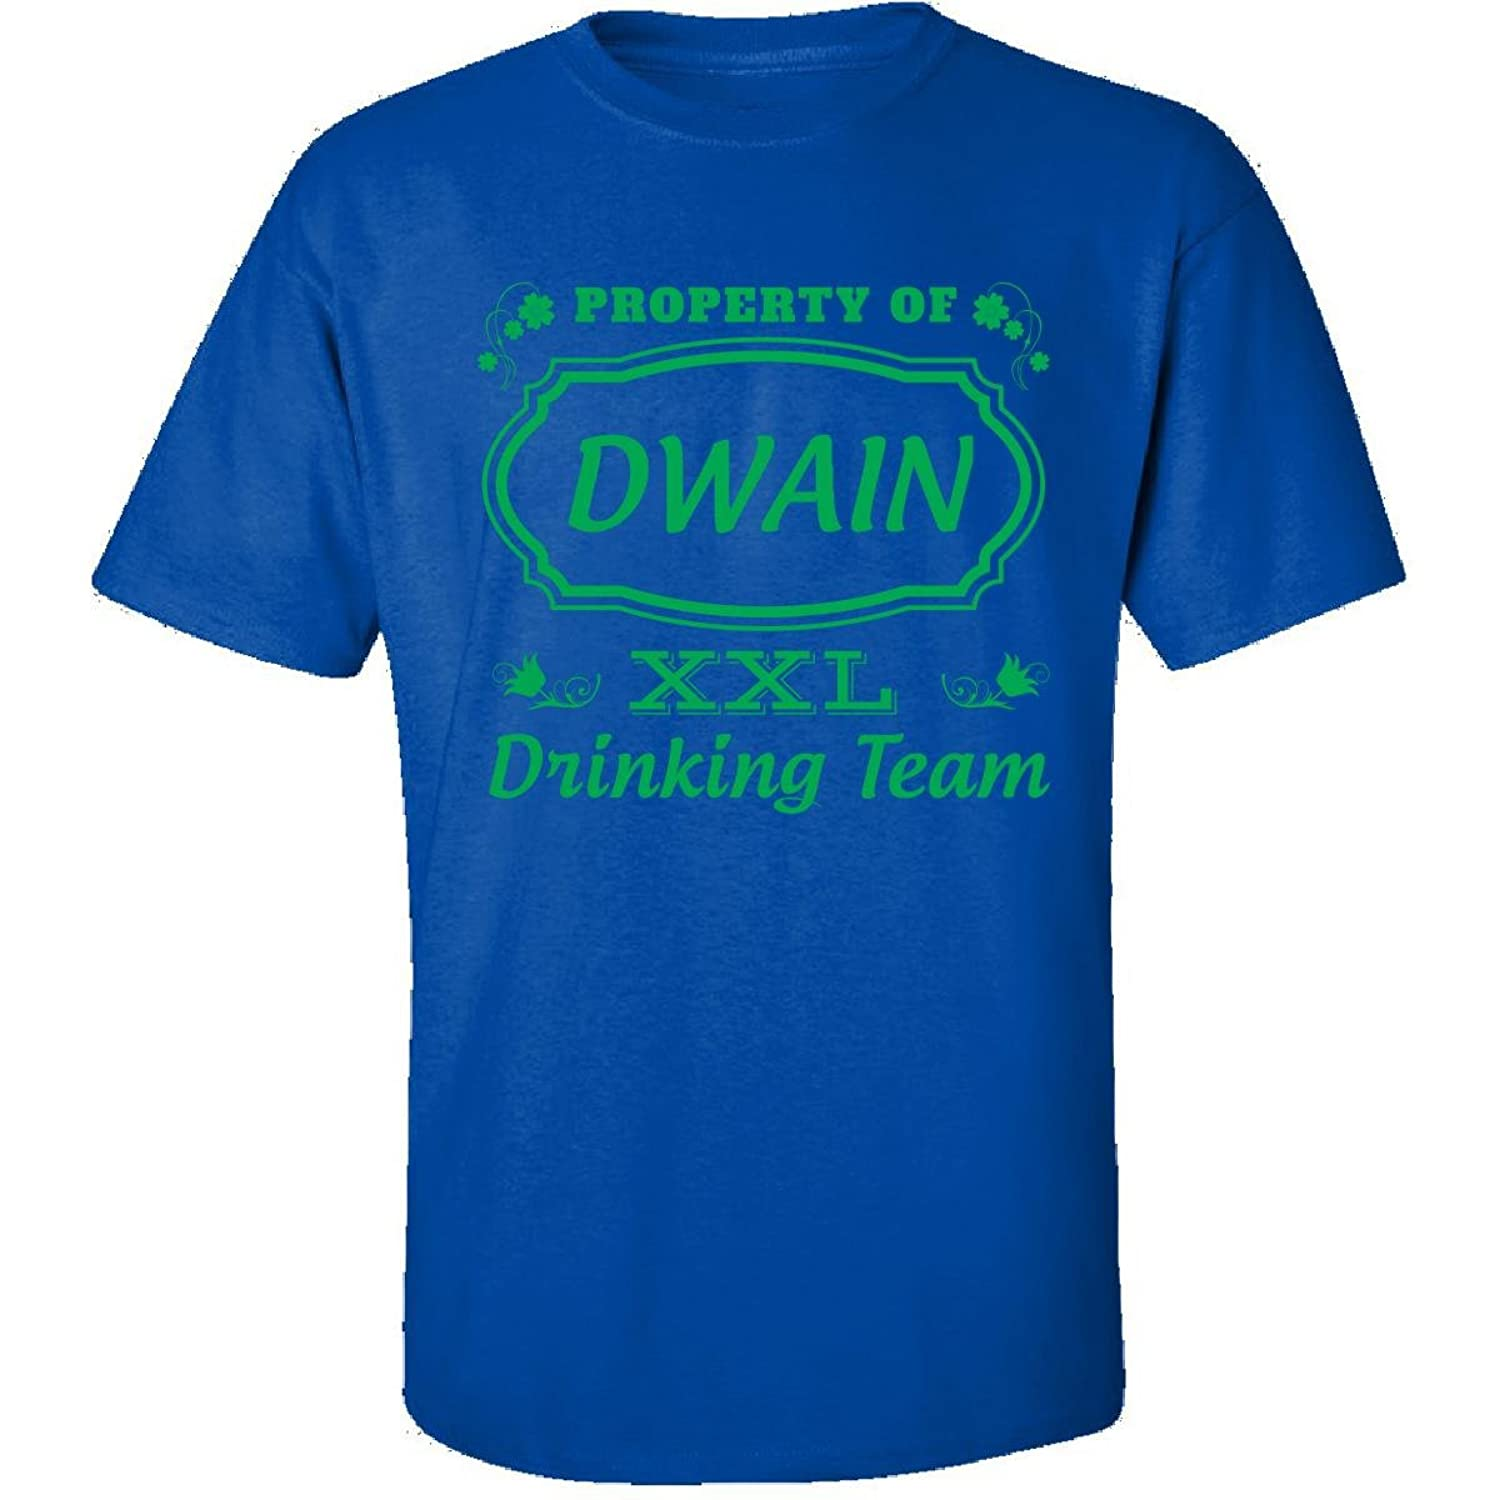 Property Of Dwain St Patrick Day Beer Drinking Team - Adult Shirt